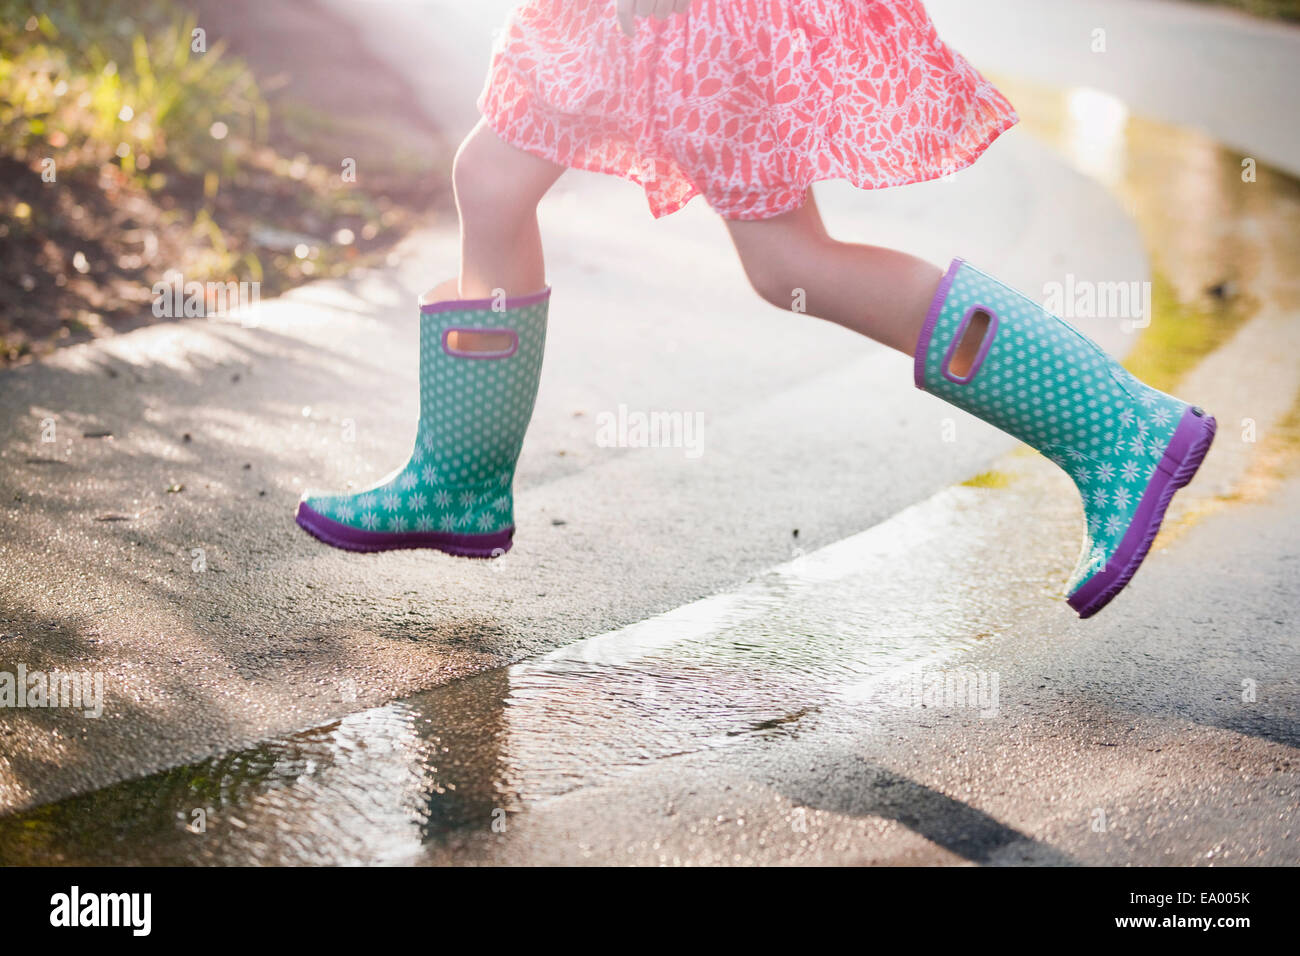 Waist down view of girl jumping puddles on rainy street - Stock Image